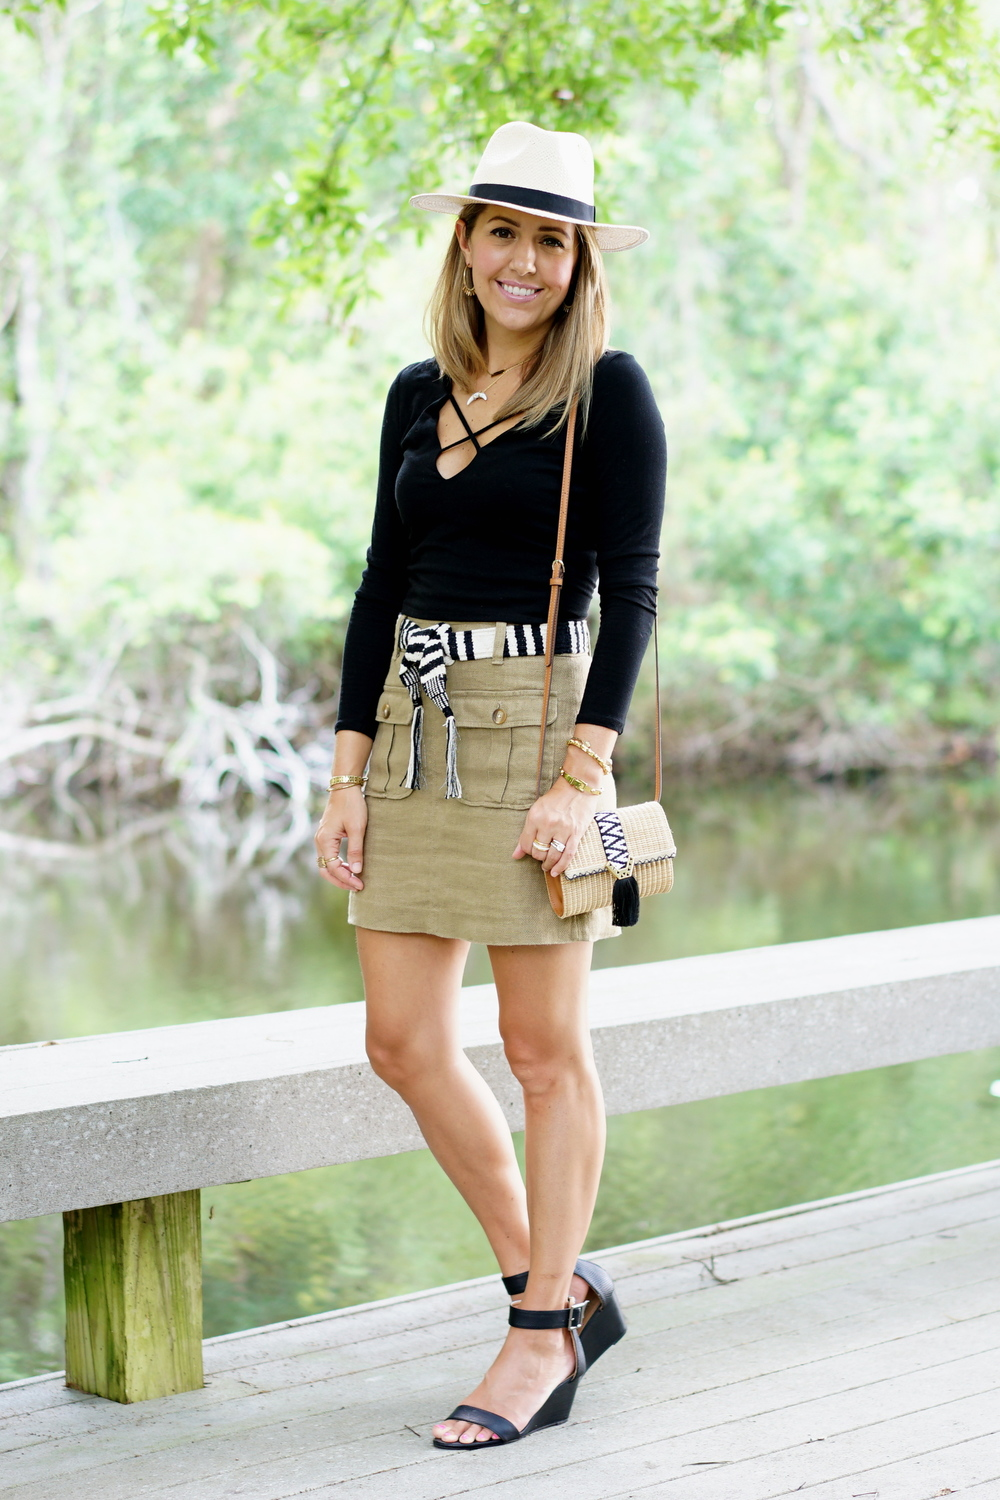 Panama hat, black criss cross top, khaki cargo skirt